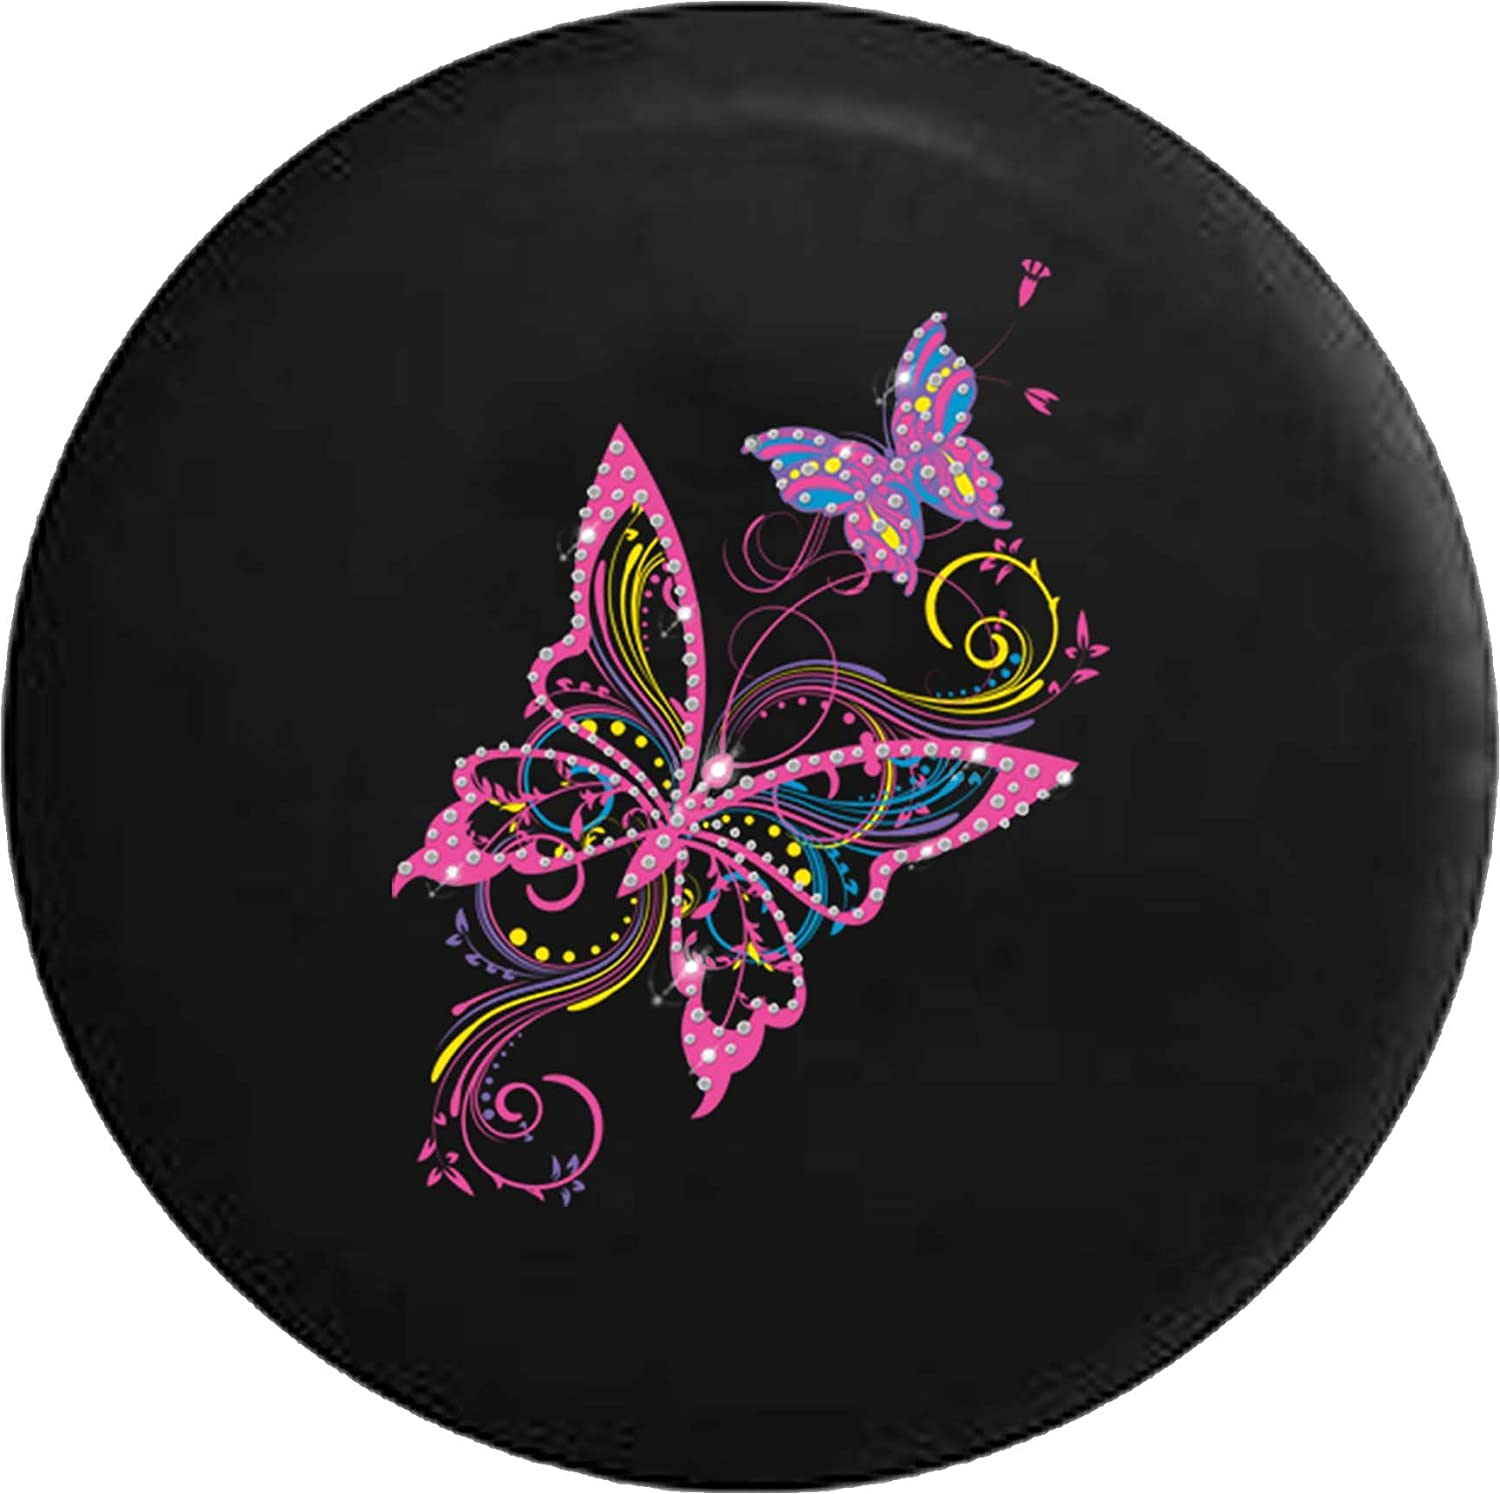 556 Gear Glittery Butterflies Artistic Swirls Pink Yellow Girl Jeep RV Spare Tire Cover Black 35 in